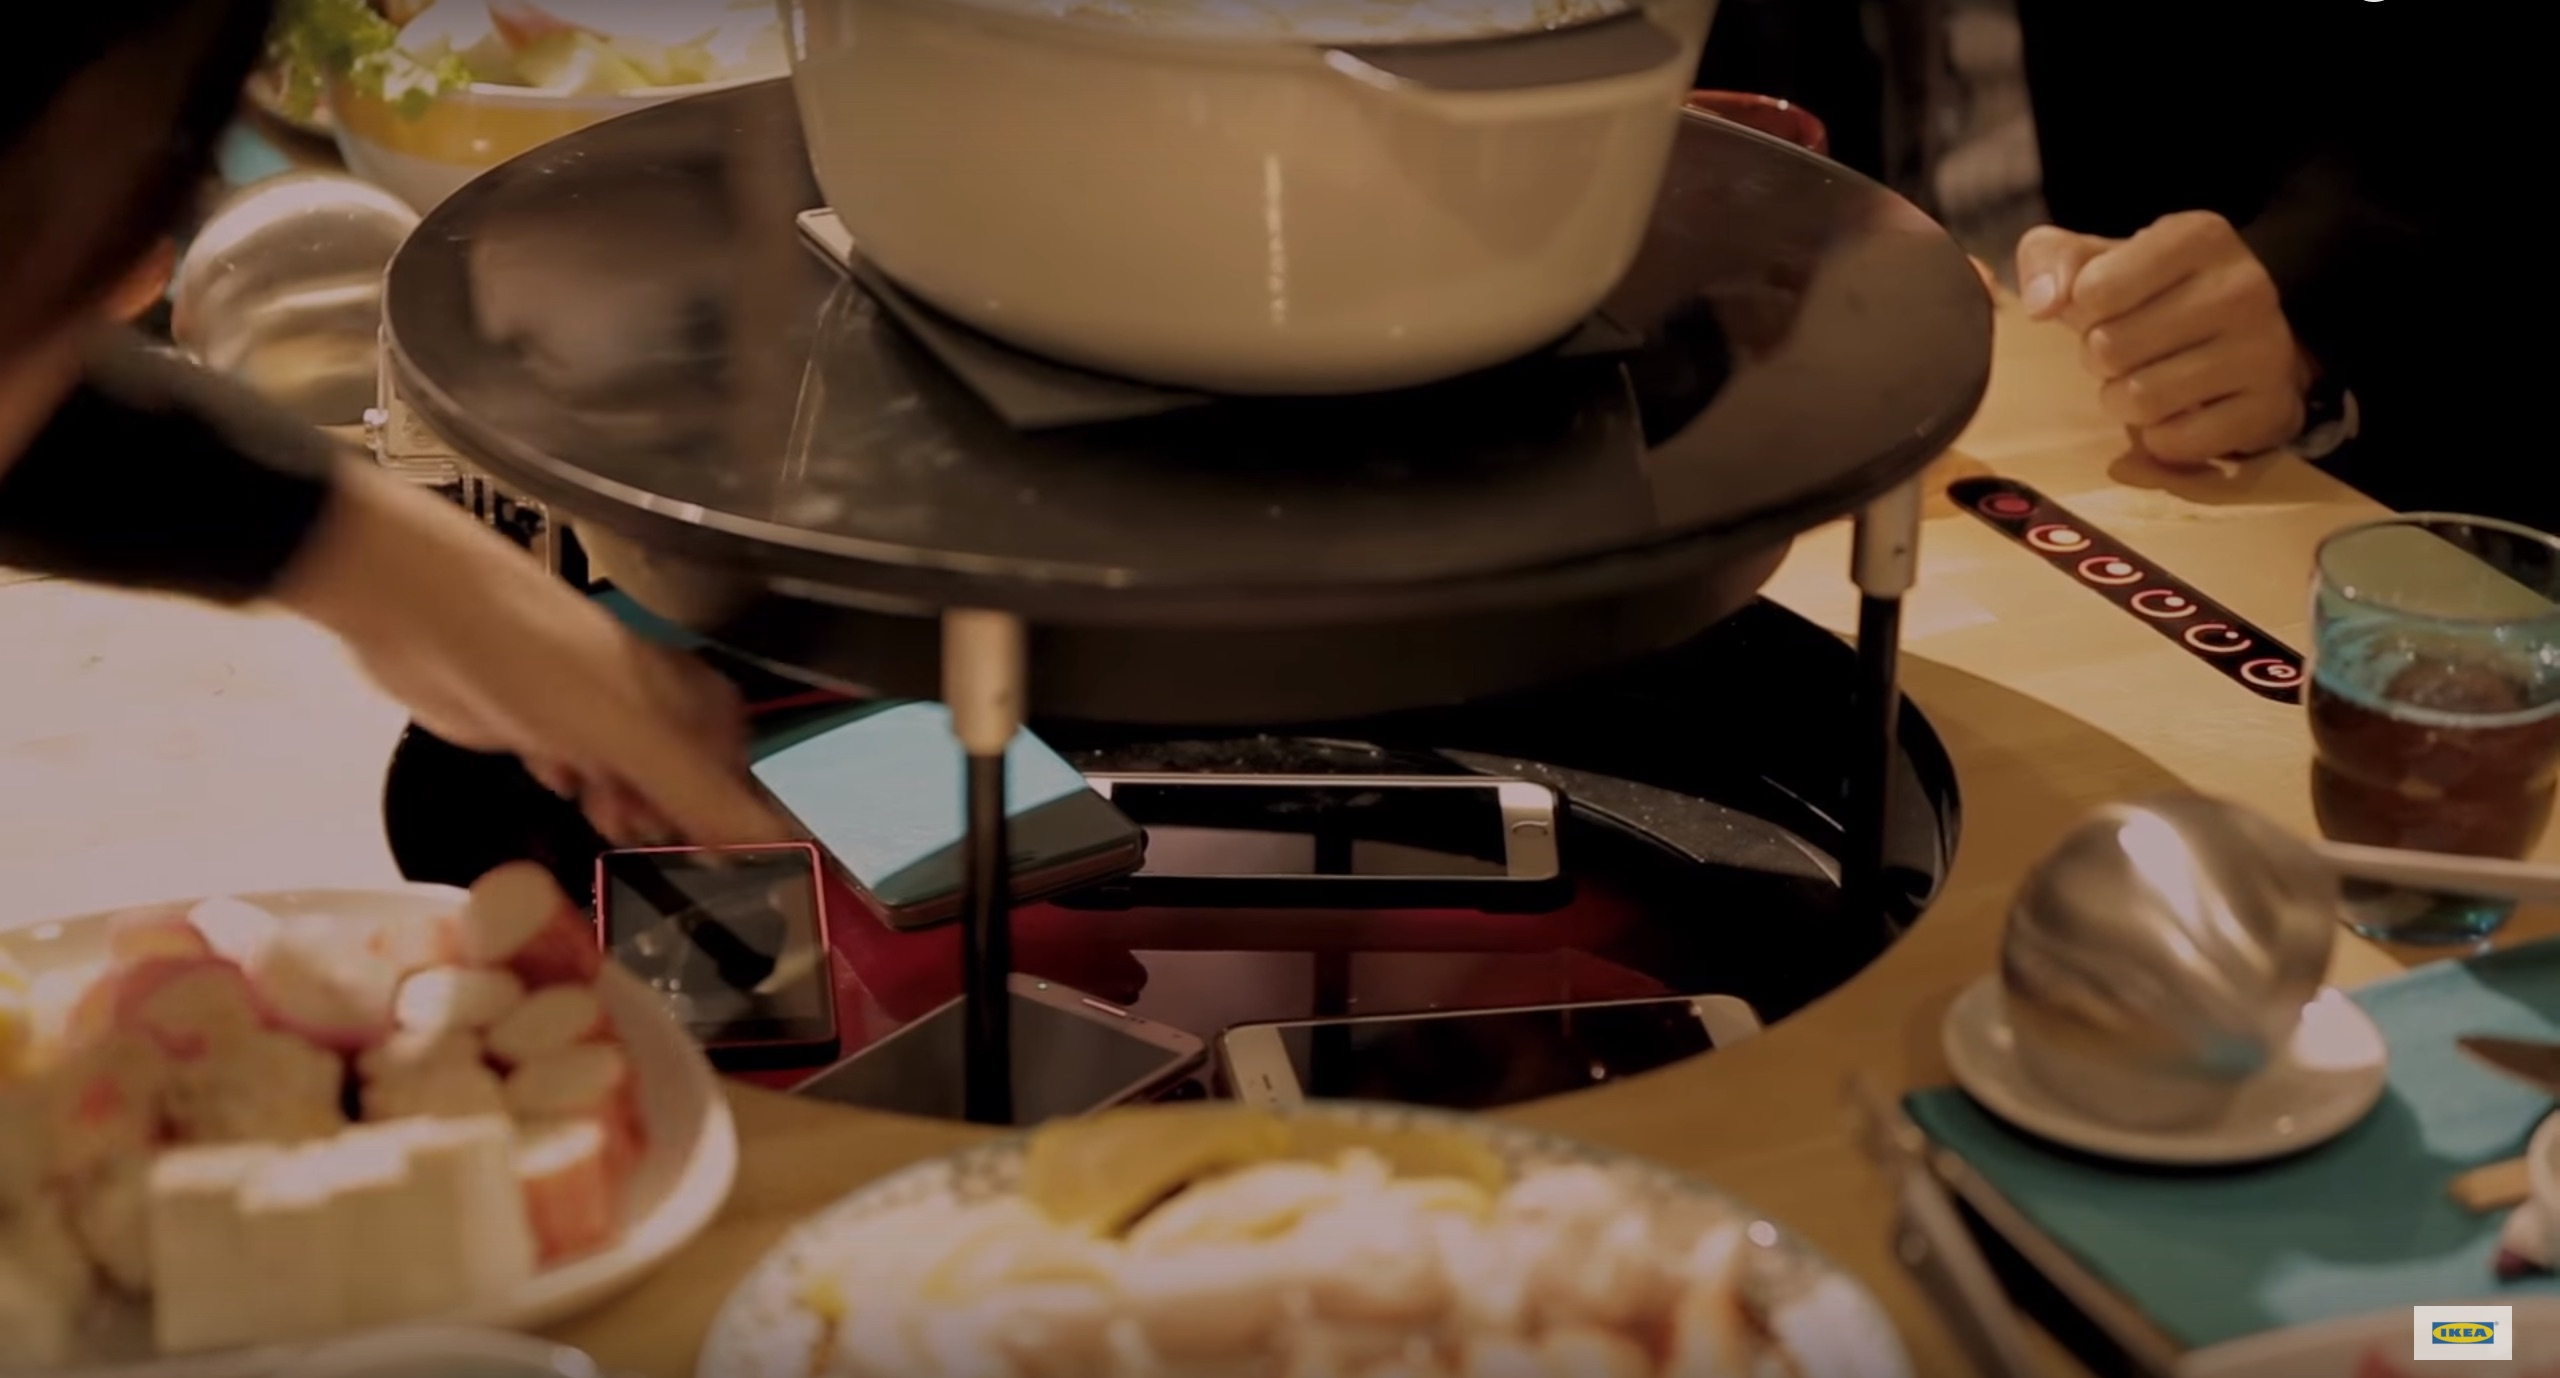 This hot-plate from IKEA in Taiwan might revolutionize how we interact at dinner